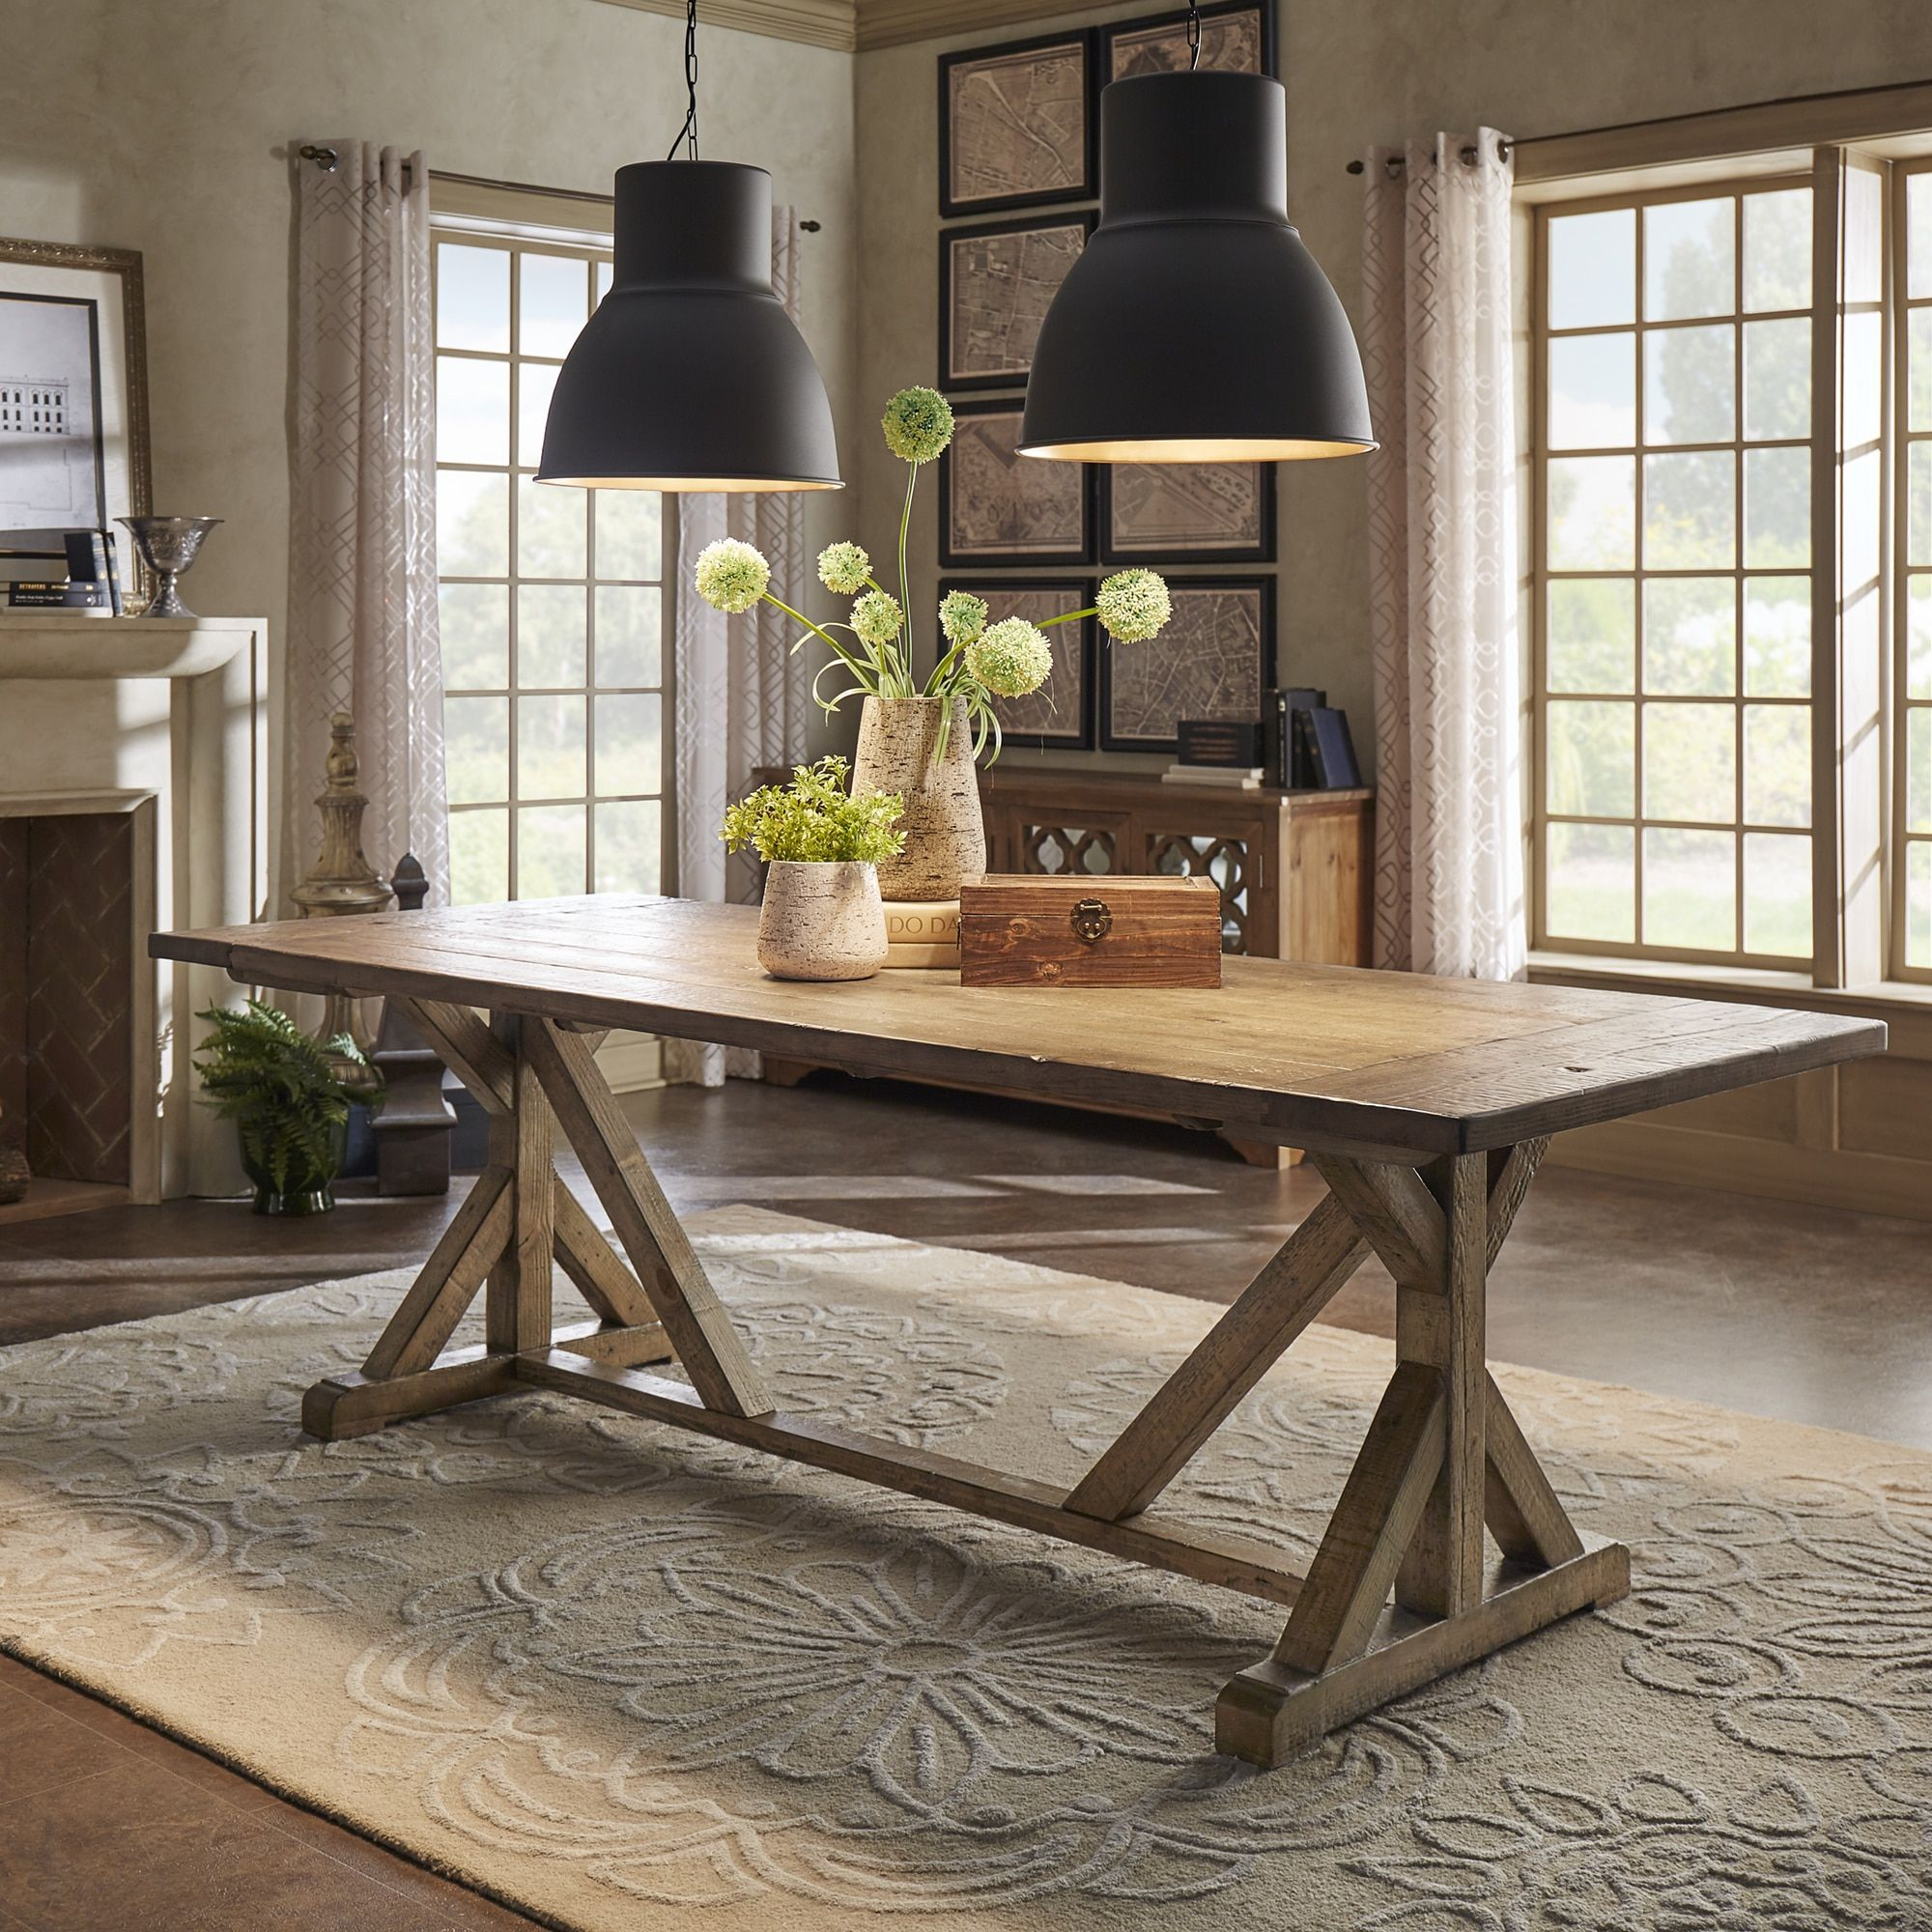 SIGNAL HILLS Paloma Rustic Reclaimed Wood Rectangular Trestle Farm Table    Free Shipping Today   Overstock